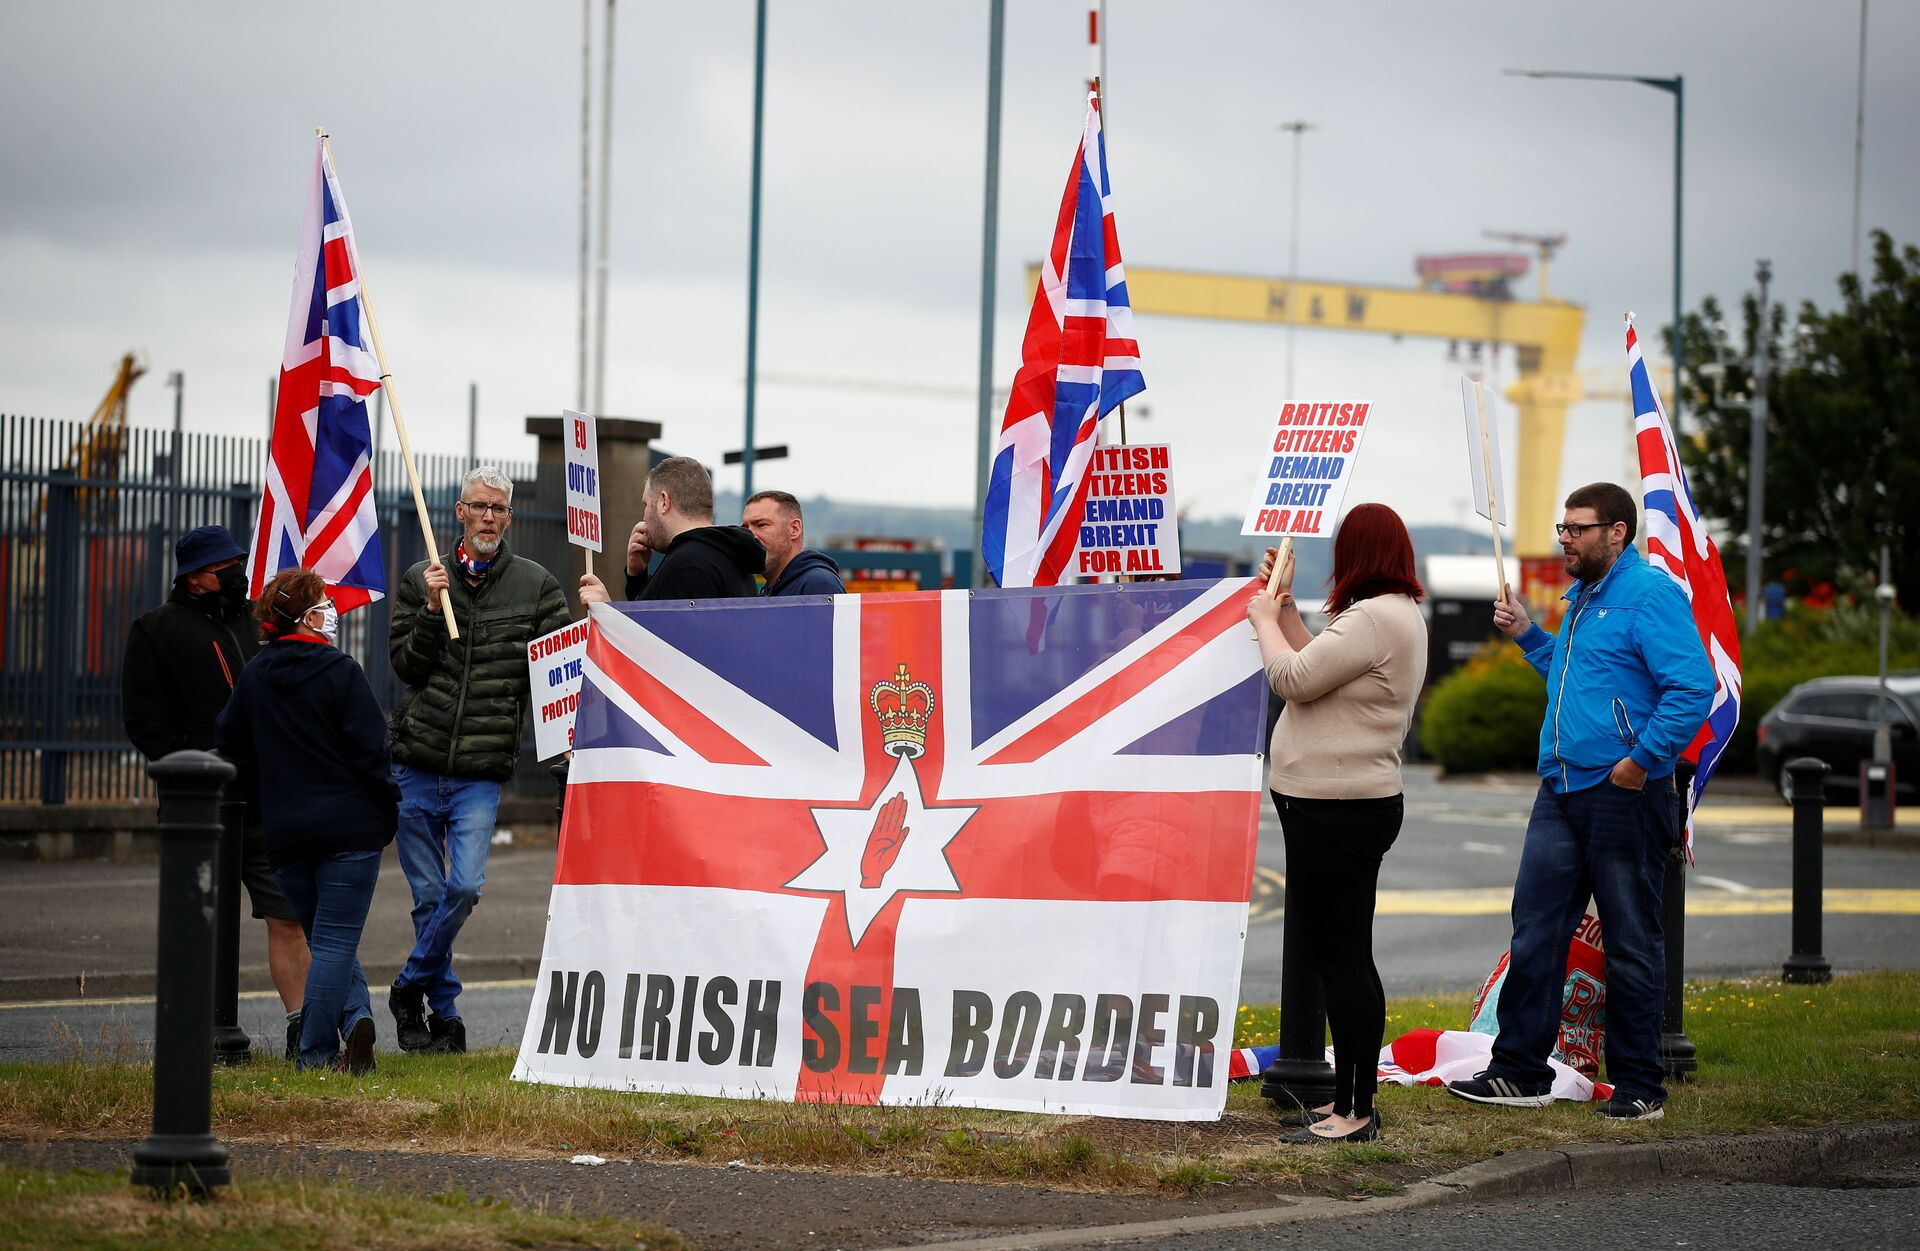 Loyalists protest against the Northern Ireland Brexit protocol at Belfast Harbour Estate, in Belfast, Northern Ireland, July 3, 2021 - Sputnik International, 1920, 09.09.2021